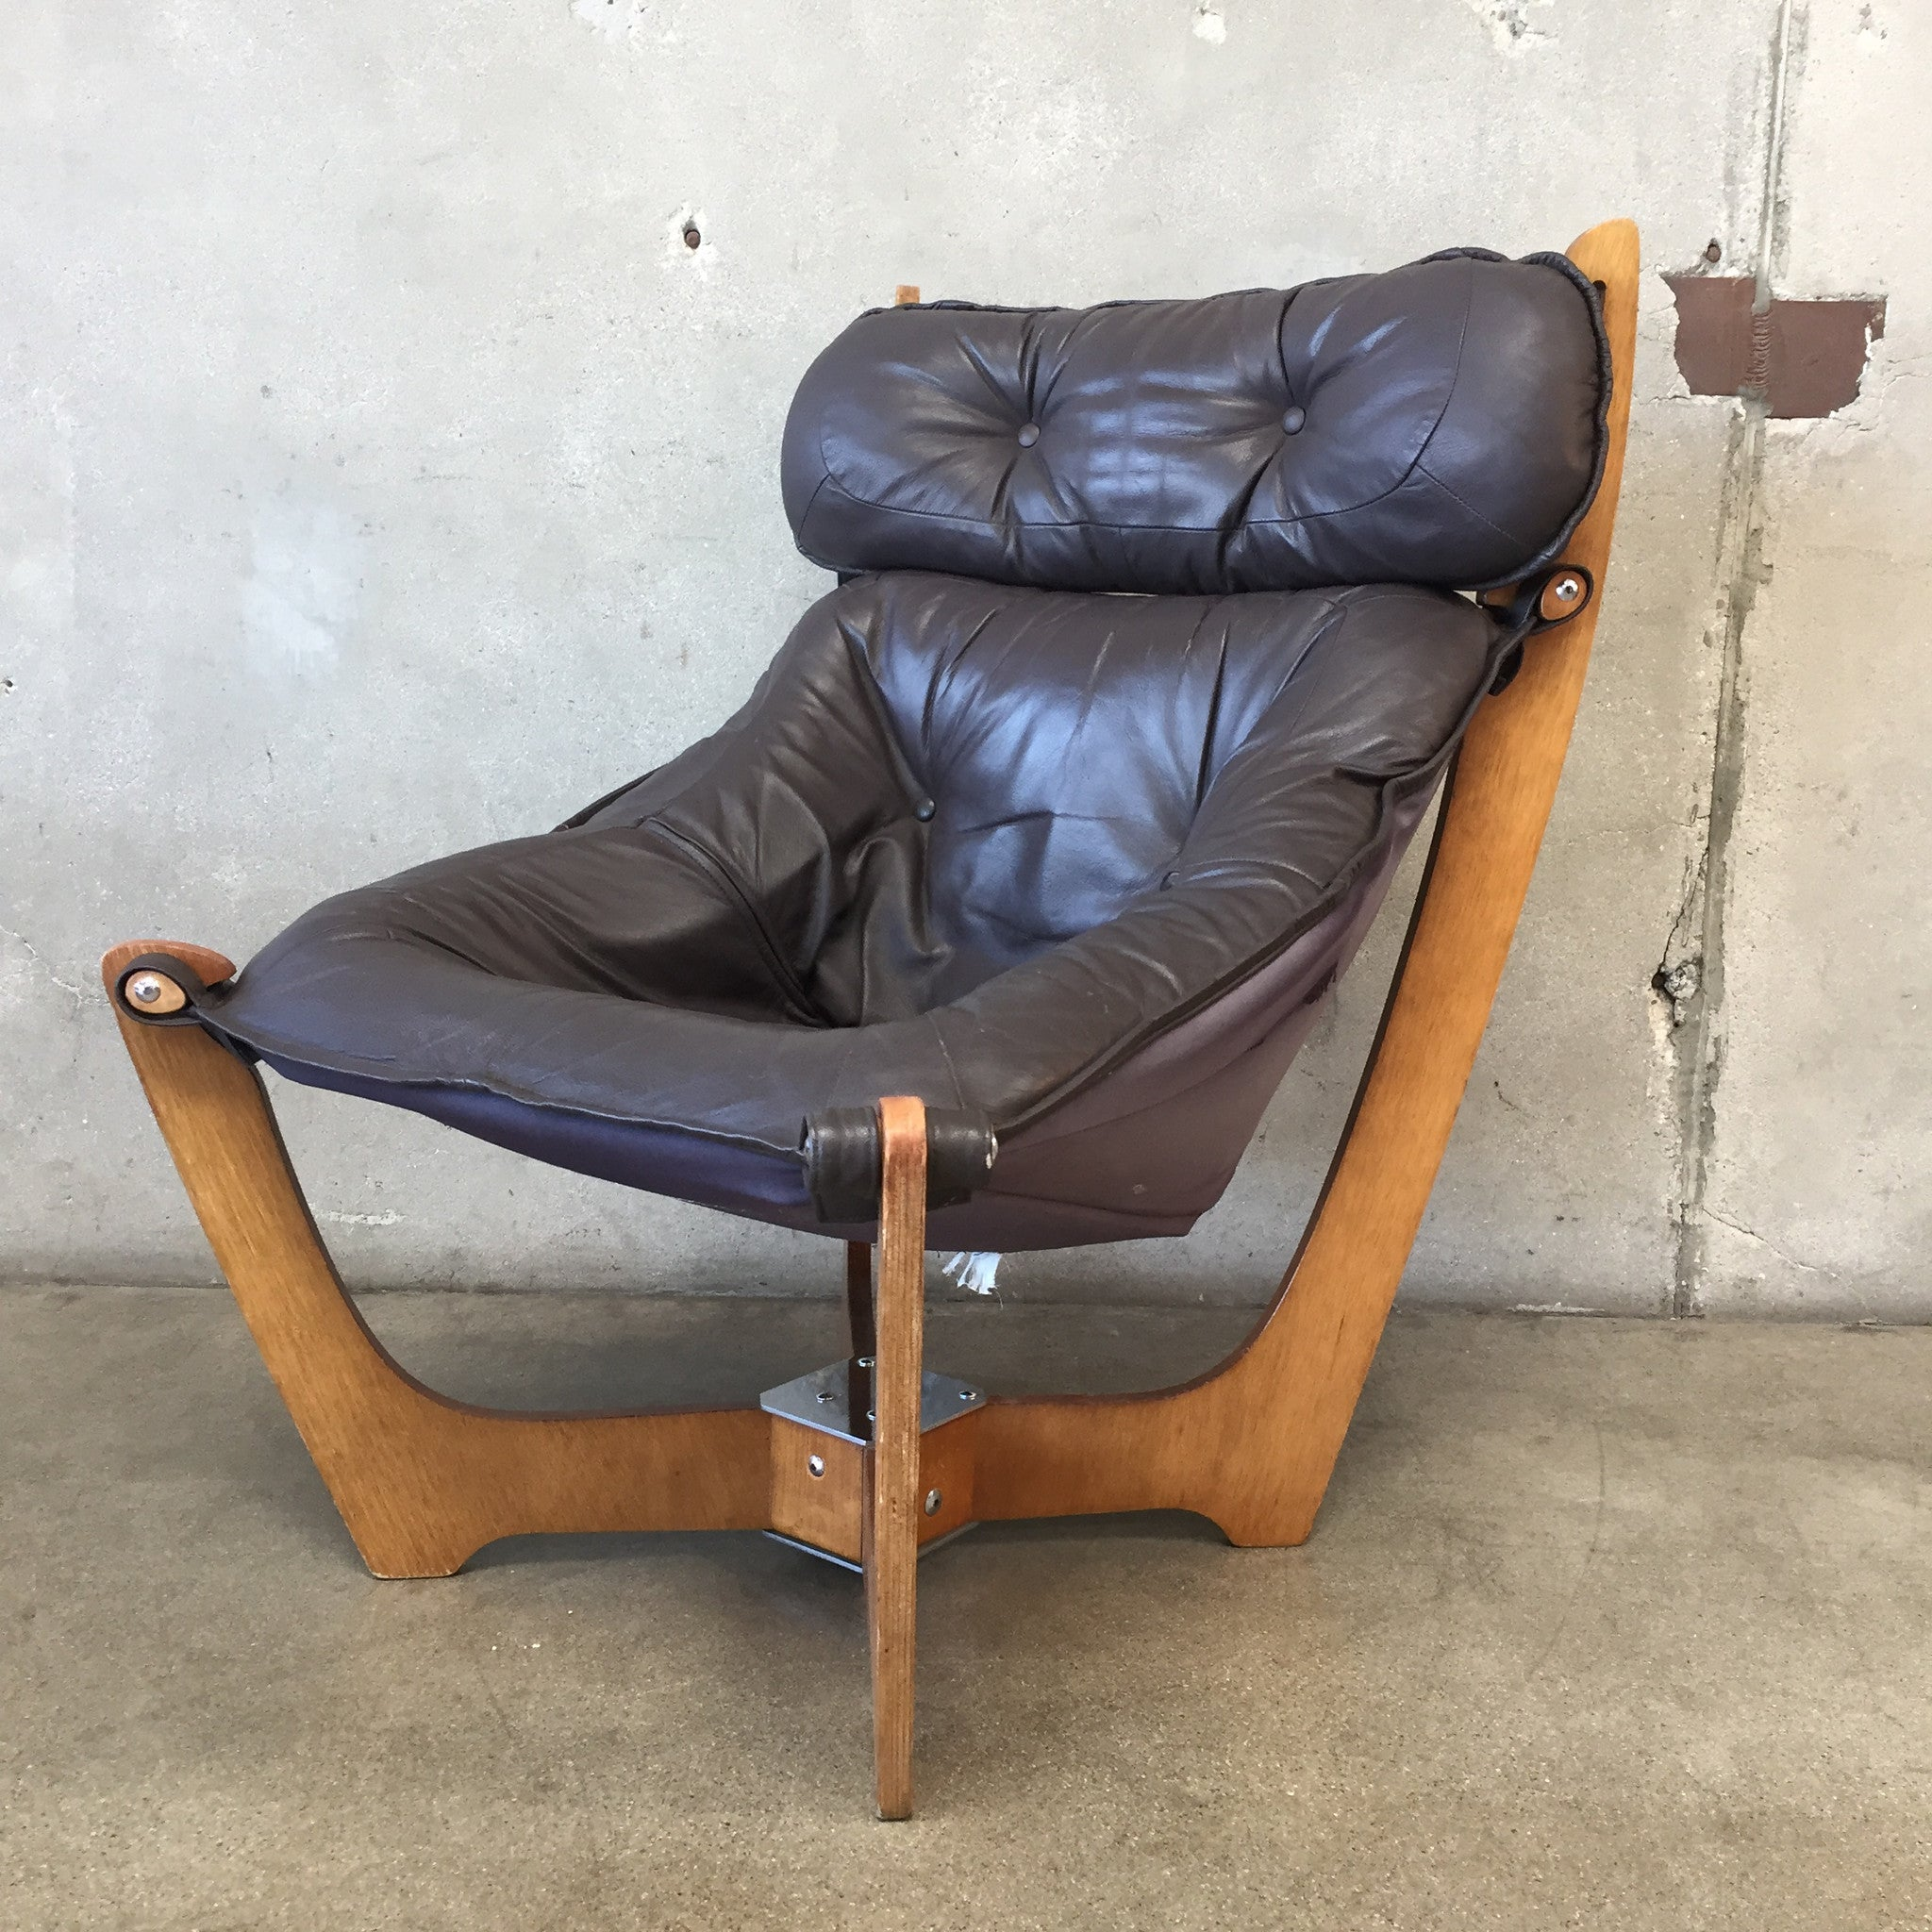 ... Vintage Leather Luna Chair By Odd Knutsen For IMG Norway ...